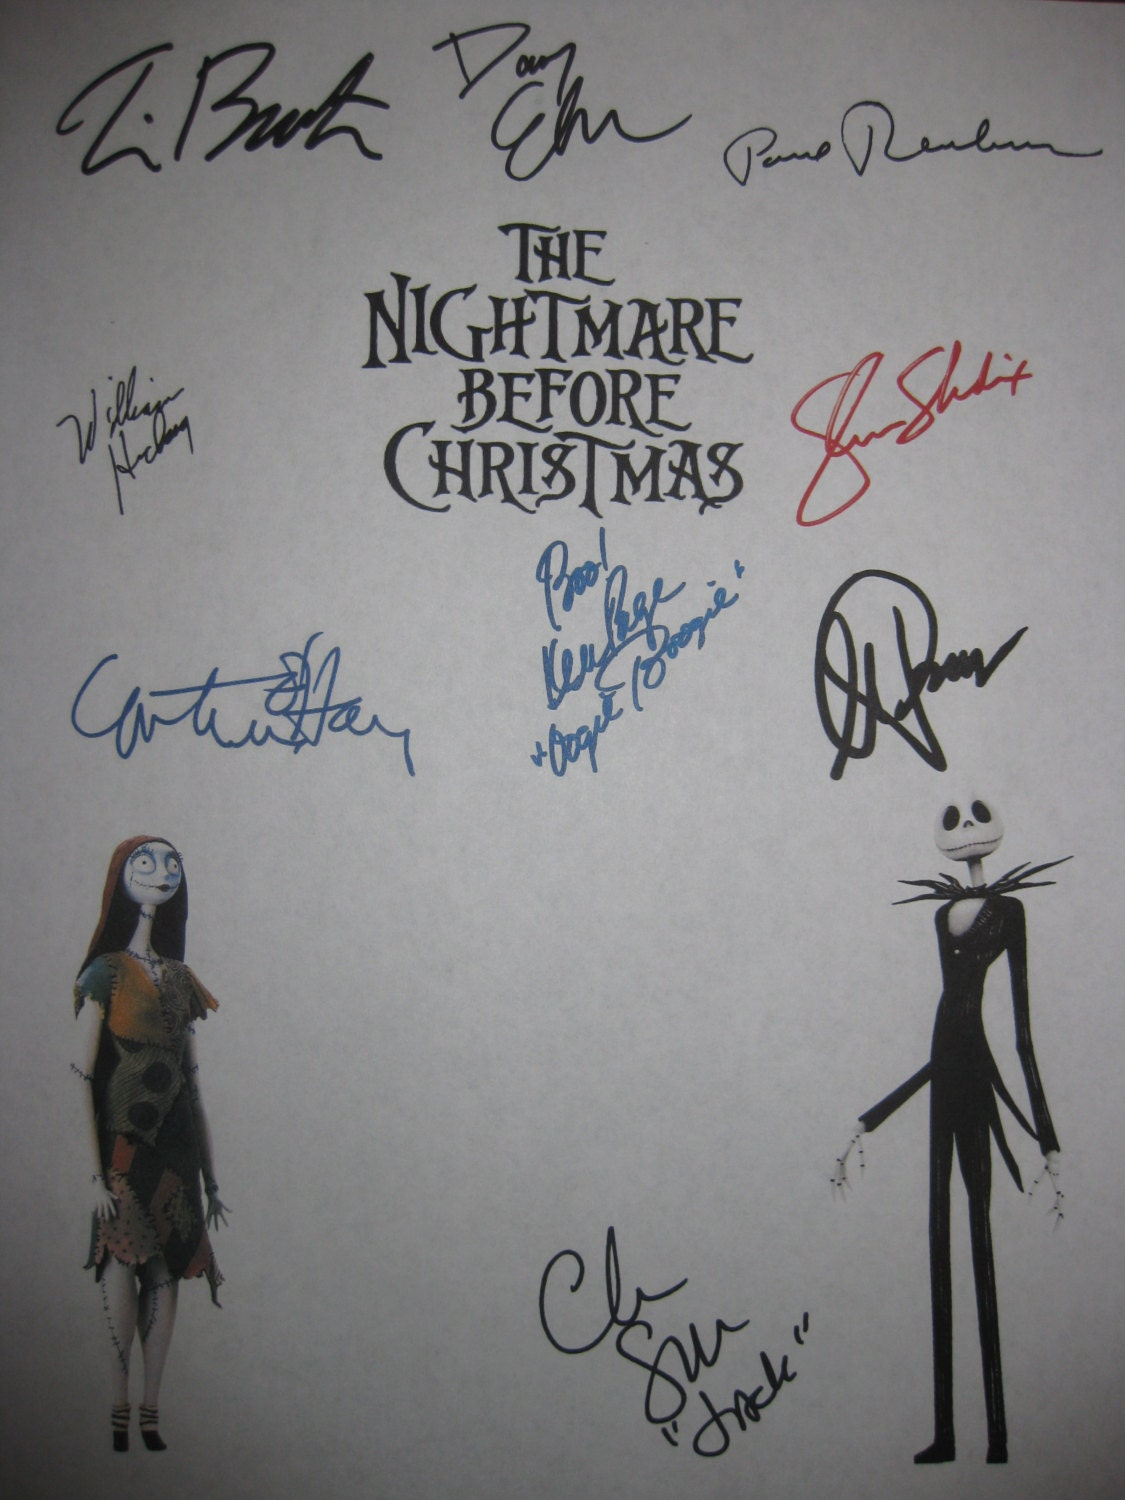 The Nightmare Before Christmas Signed Fim Movie Screenplay | Etsy